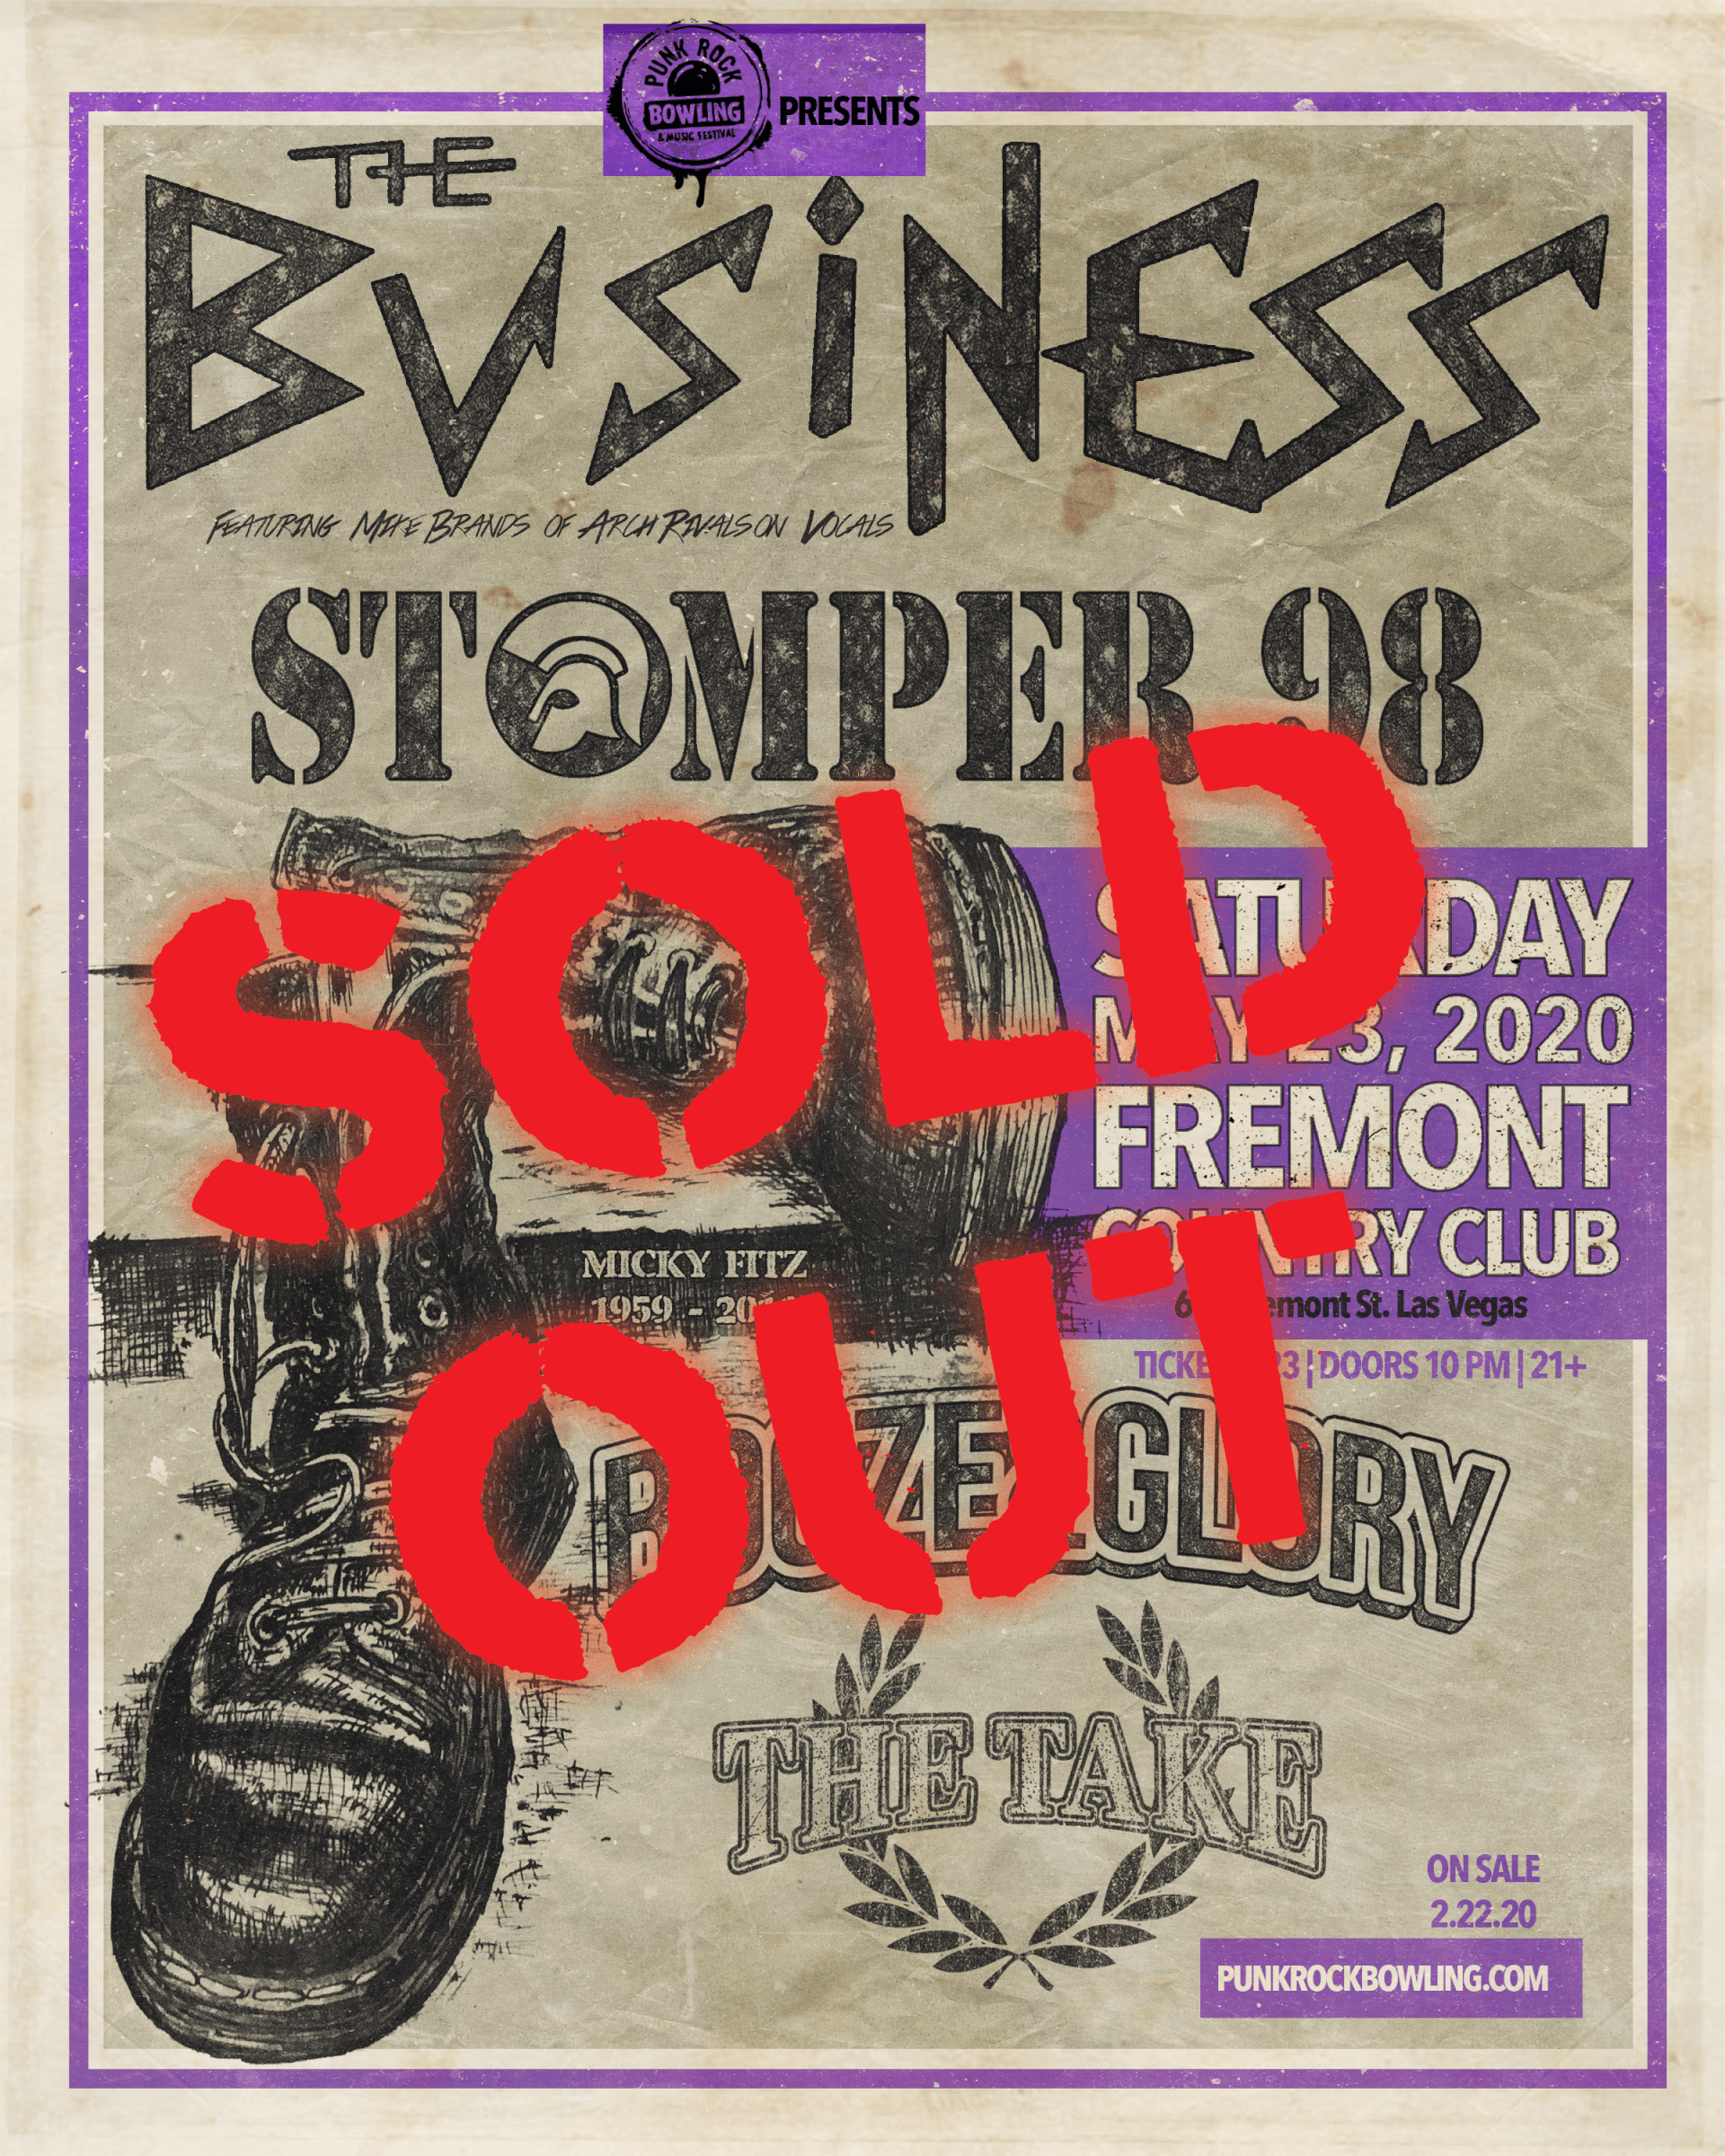 THE BUSINESS STOMPER 98 PUNK ROCK BOWLING 2020 sold out